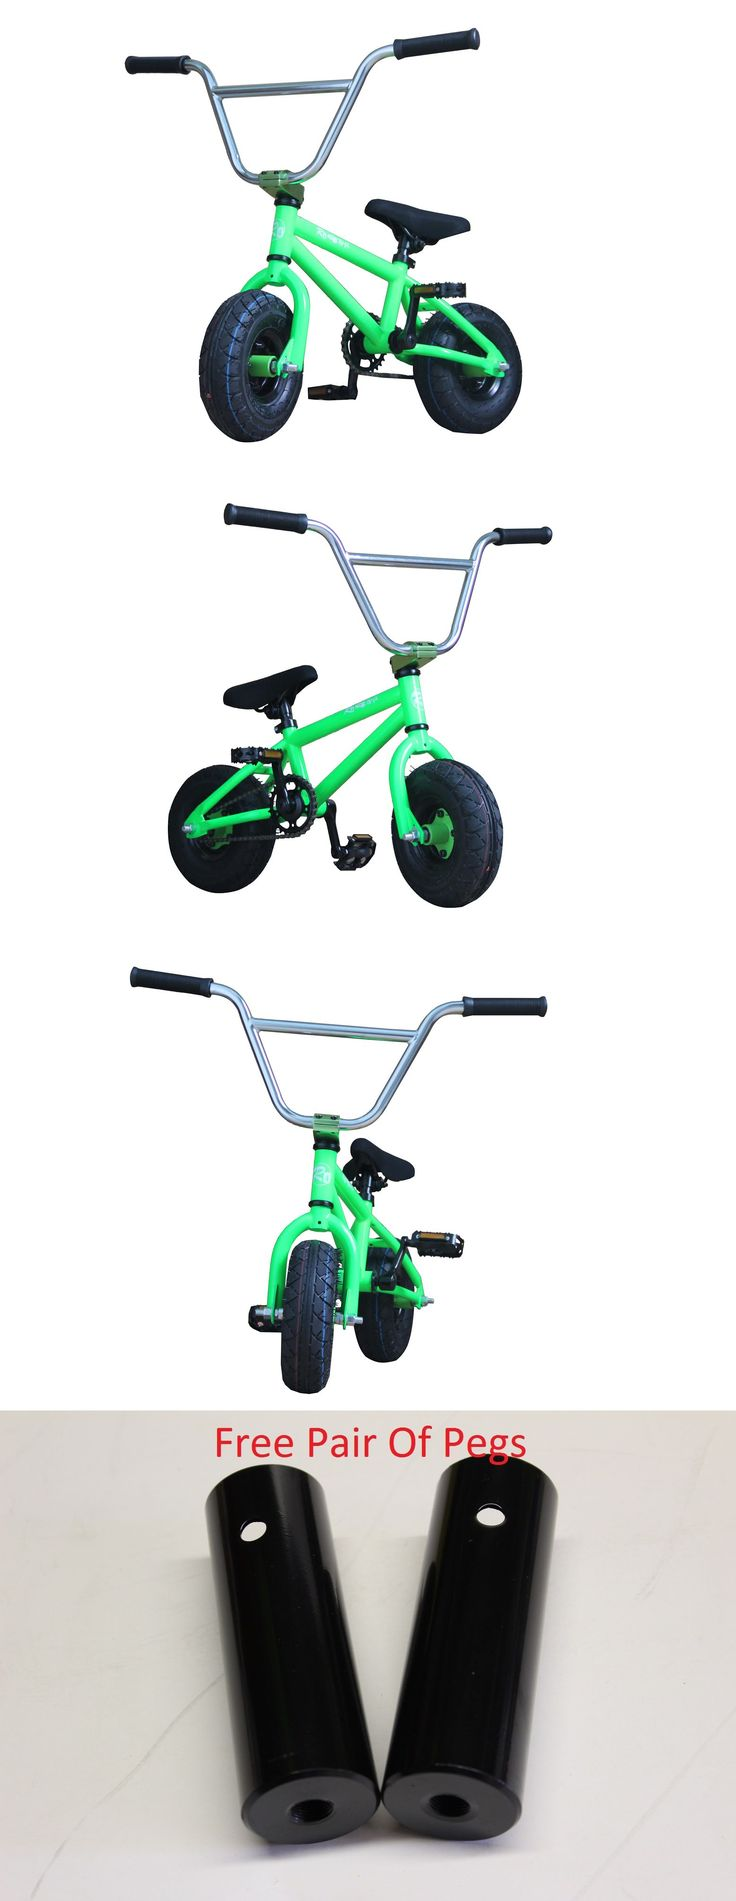 Skateboards-Complete 16264: R4 Mini Bmx Bike Pro Monster Green Jump Stunt Trick, Pegs Included -> BUY IT NOW ONLY: $199.99 on eBay!